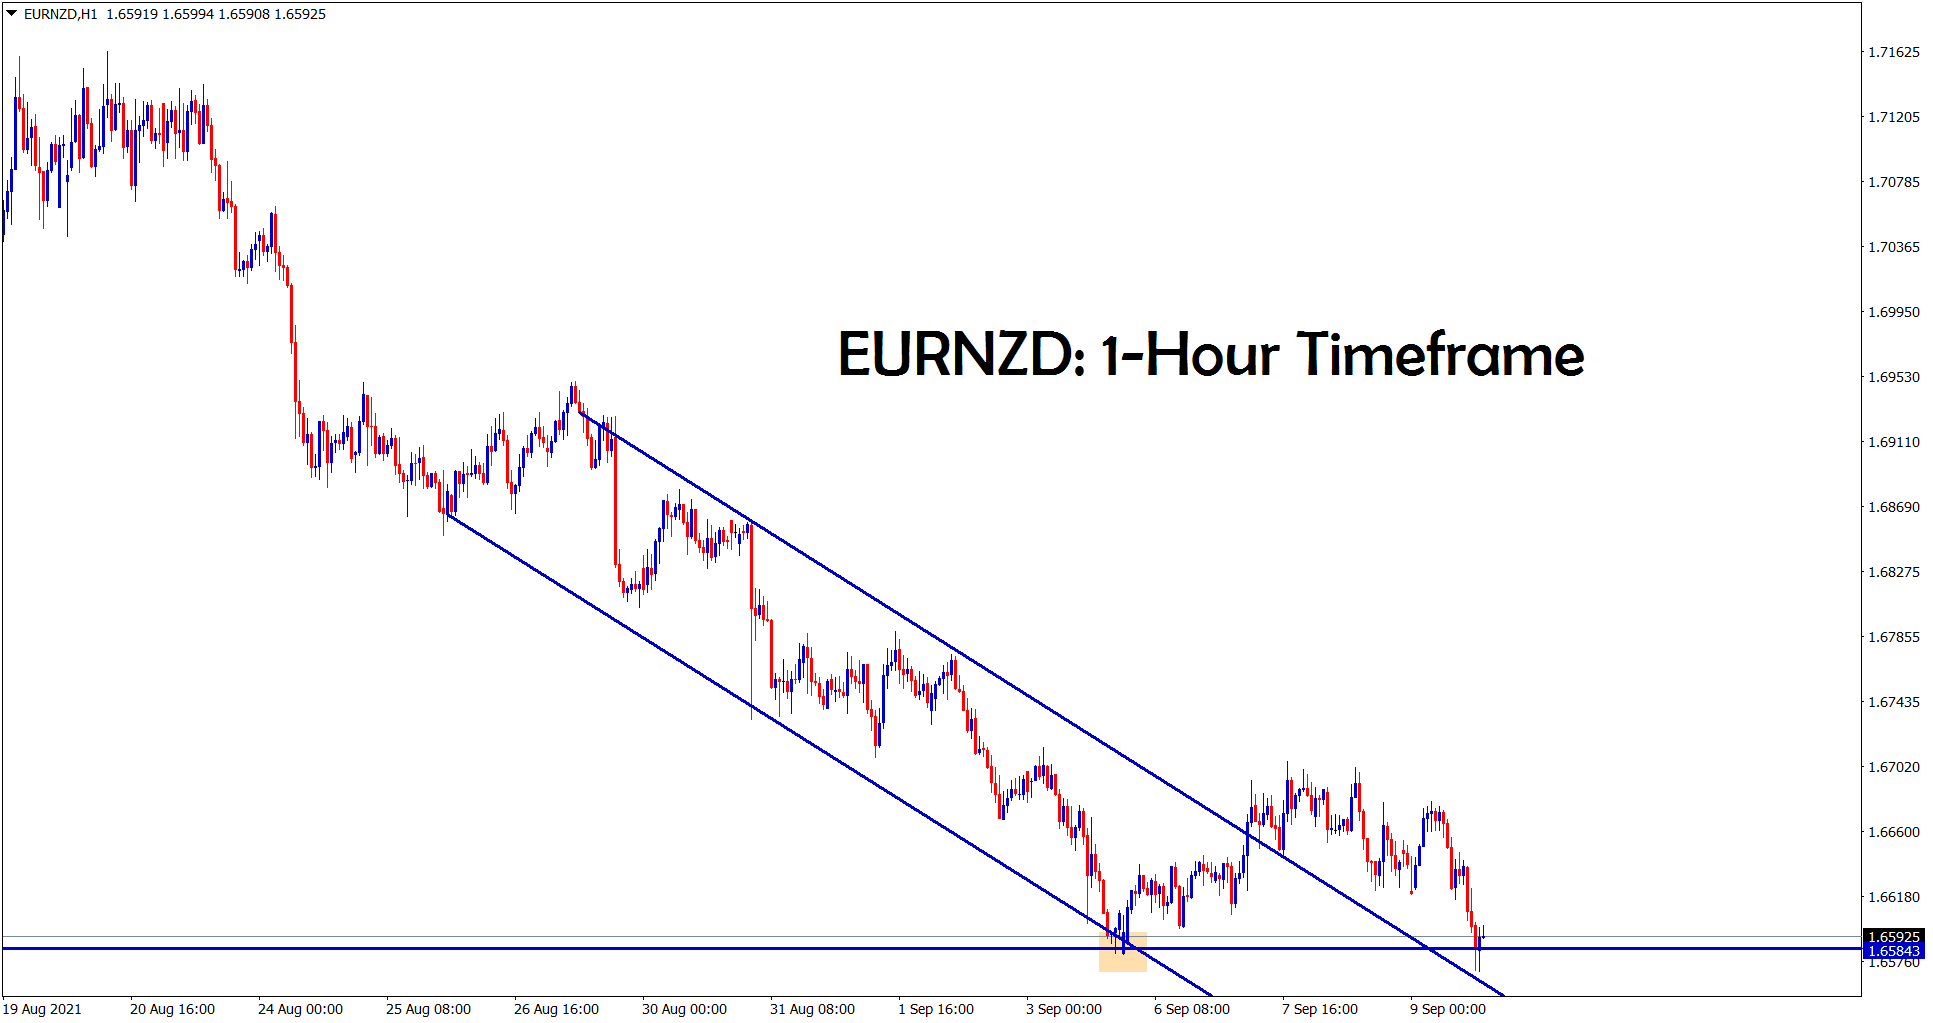 EURNZD reached the support area in the 1 hour timeframe